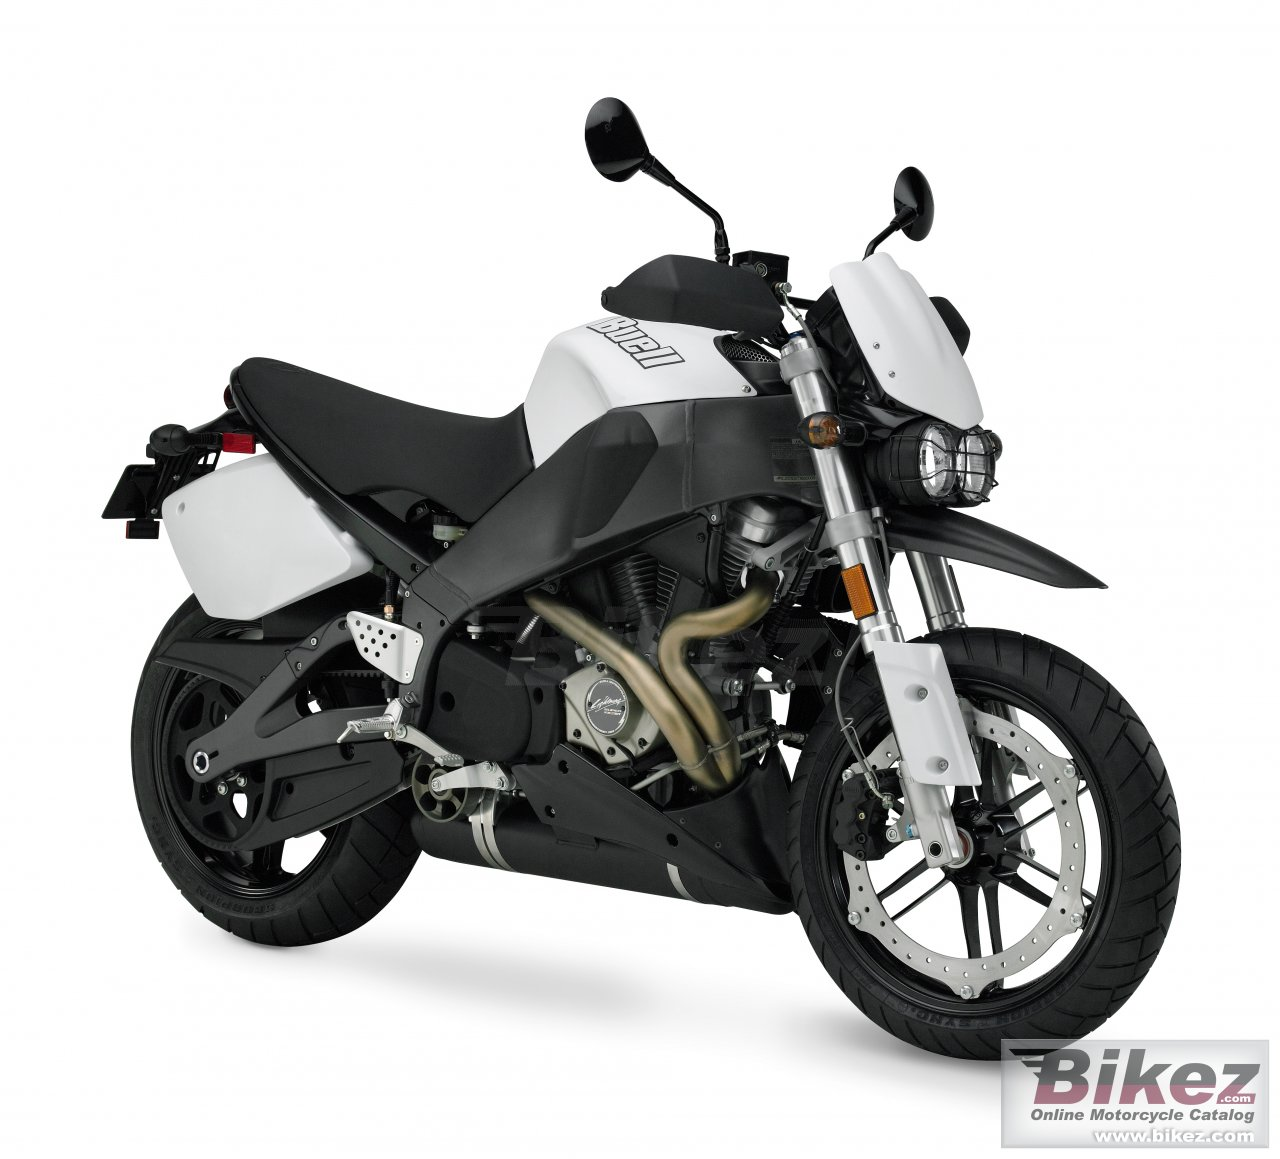 Big Buell lightning super tt xb12stt picture and wallpaper from Bikez.com